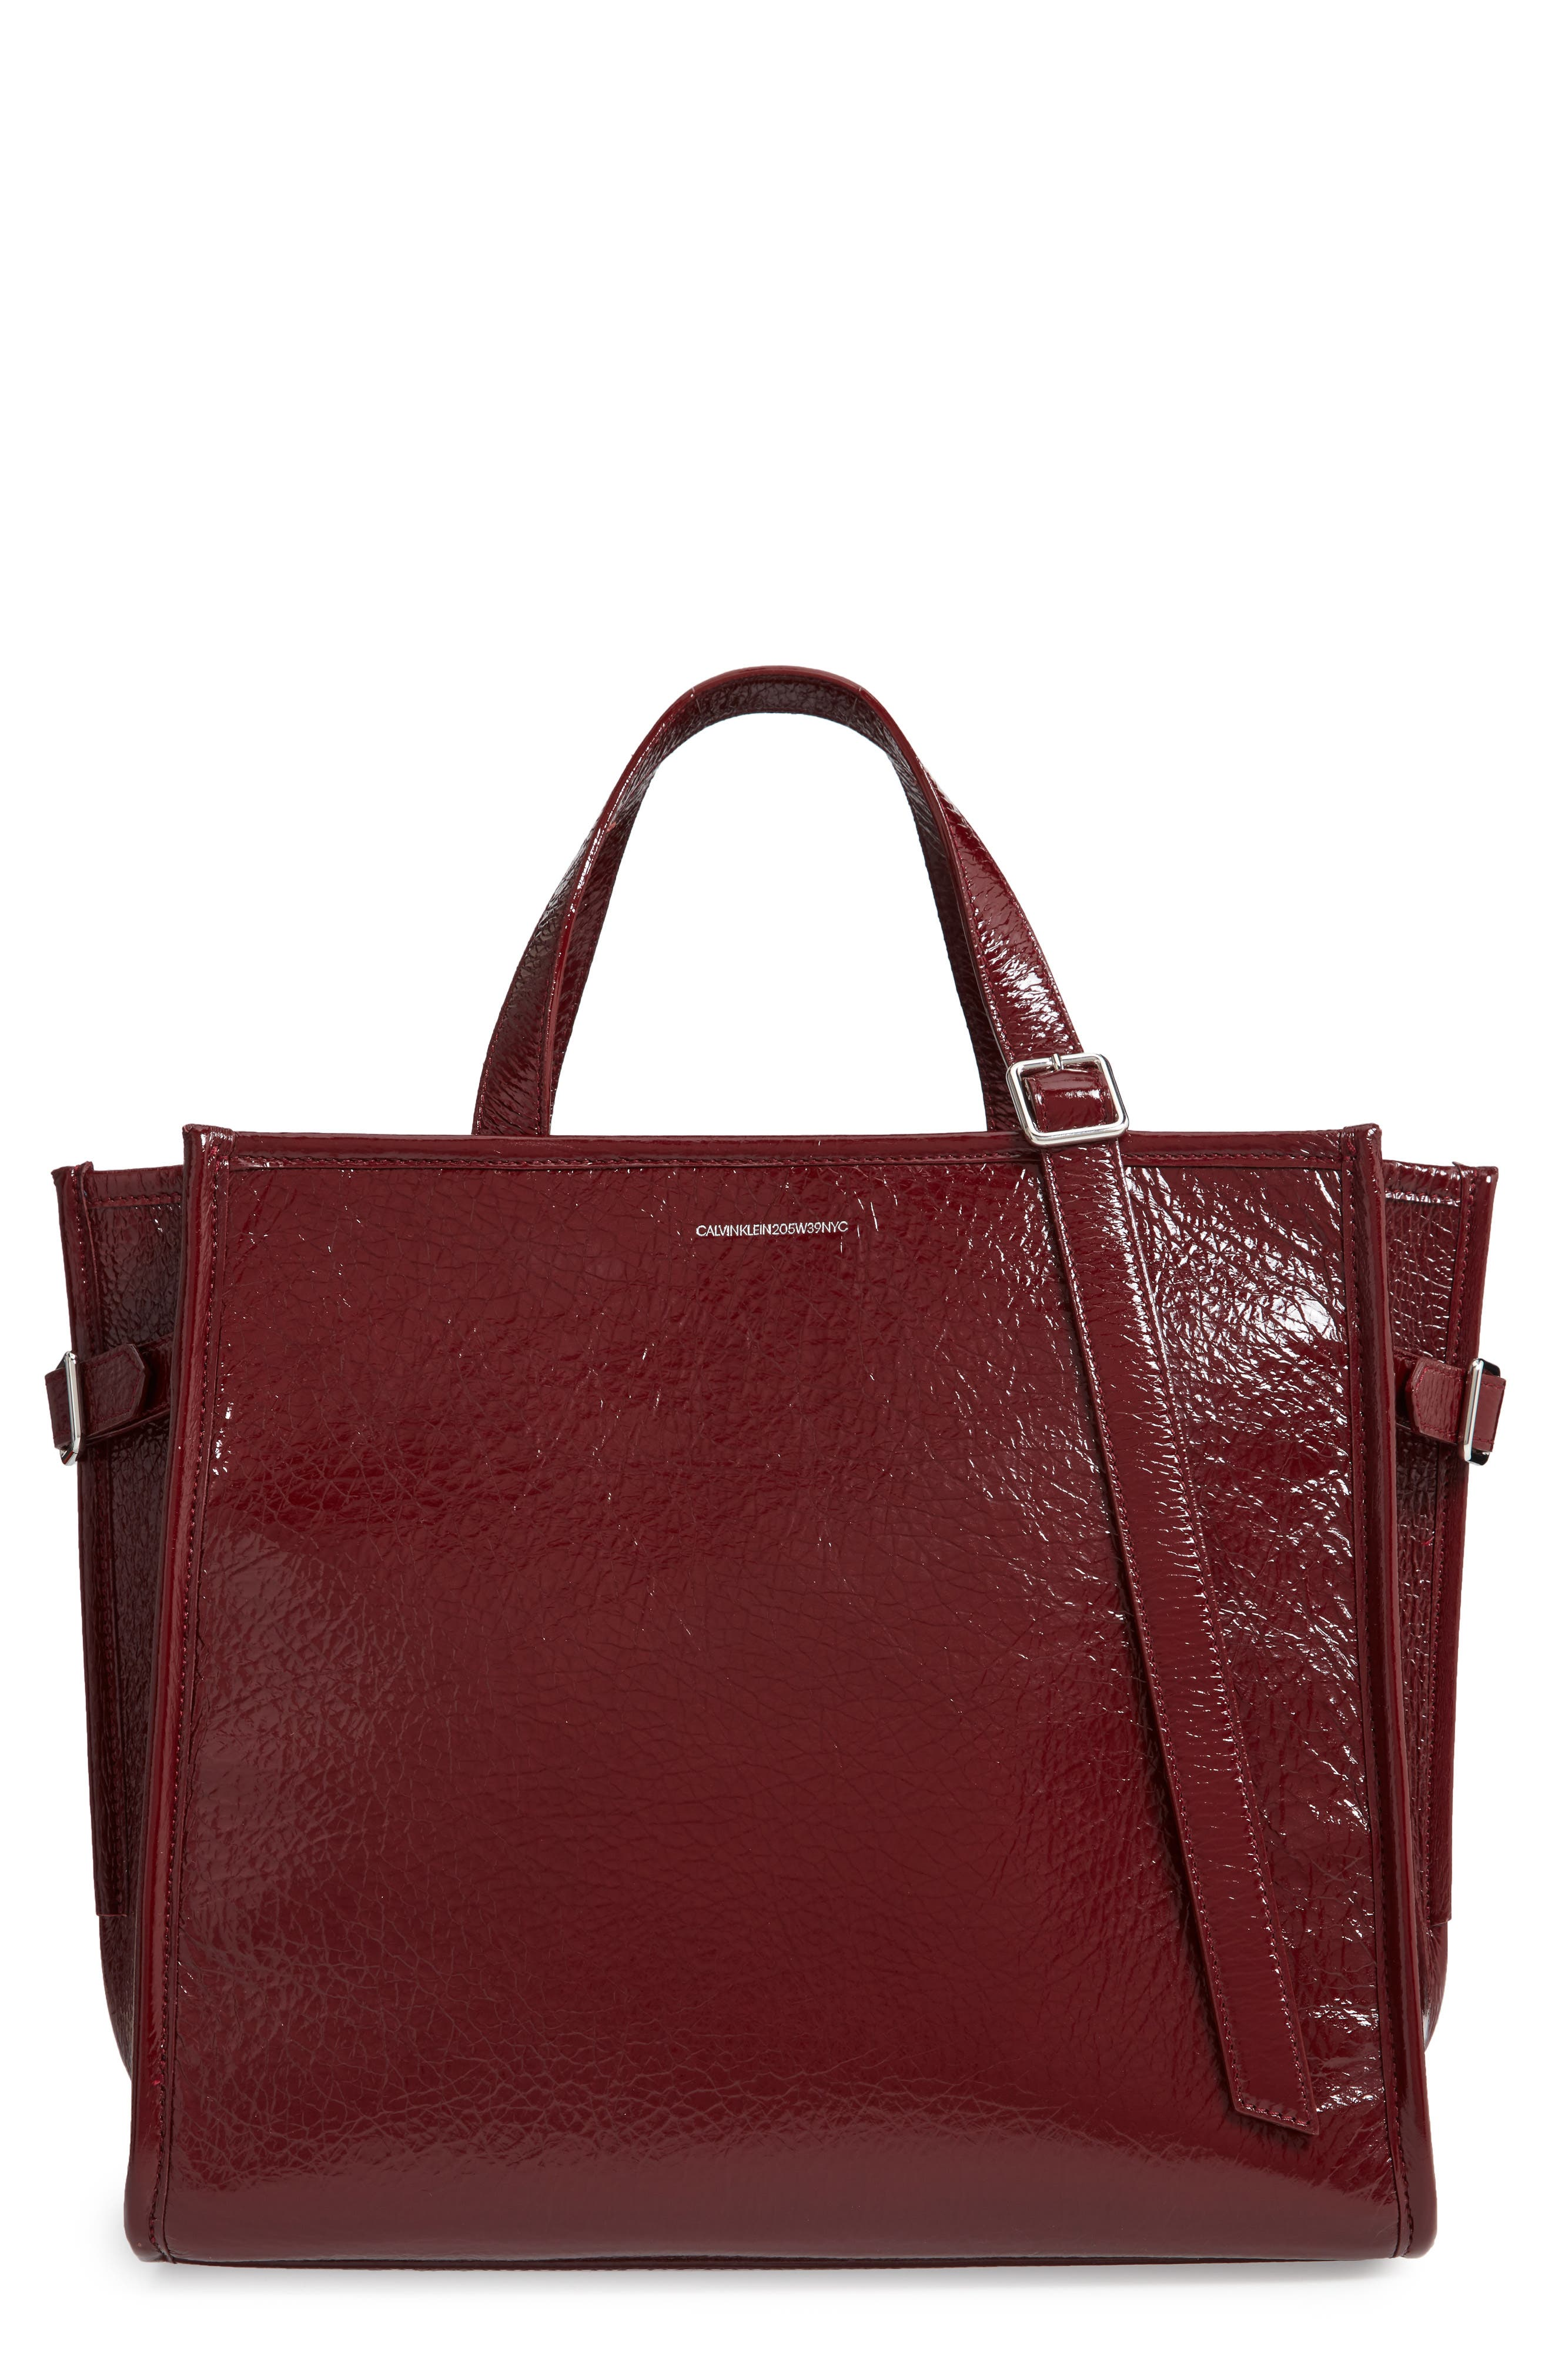 CALVIN KLEIN 209W39NYC East/West Leather Tote,                             Main thumbnail 1, color,                             DARK BURGUNDY